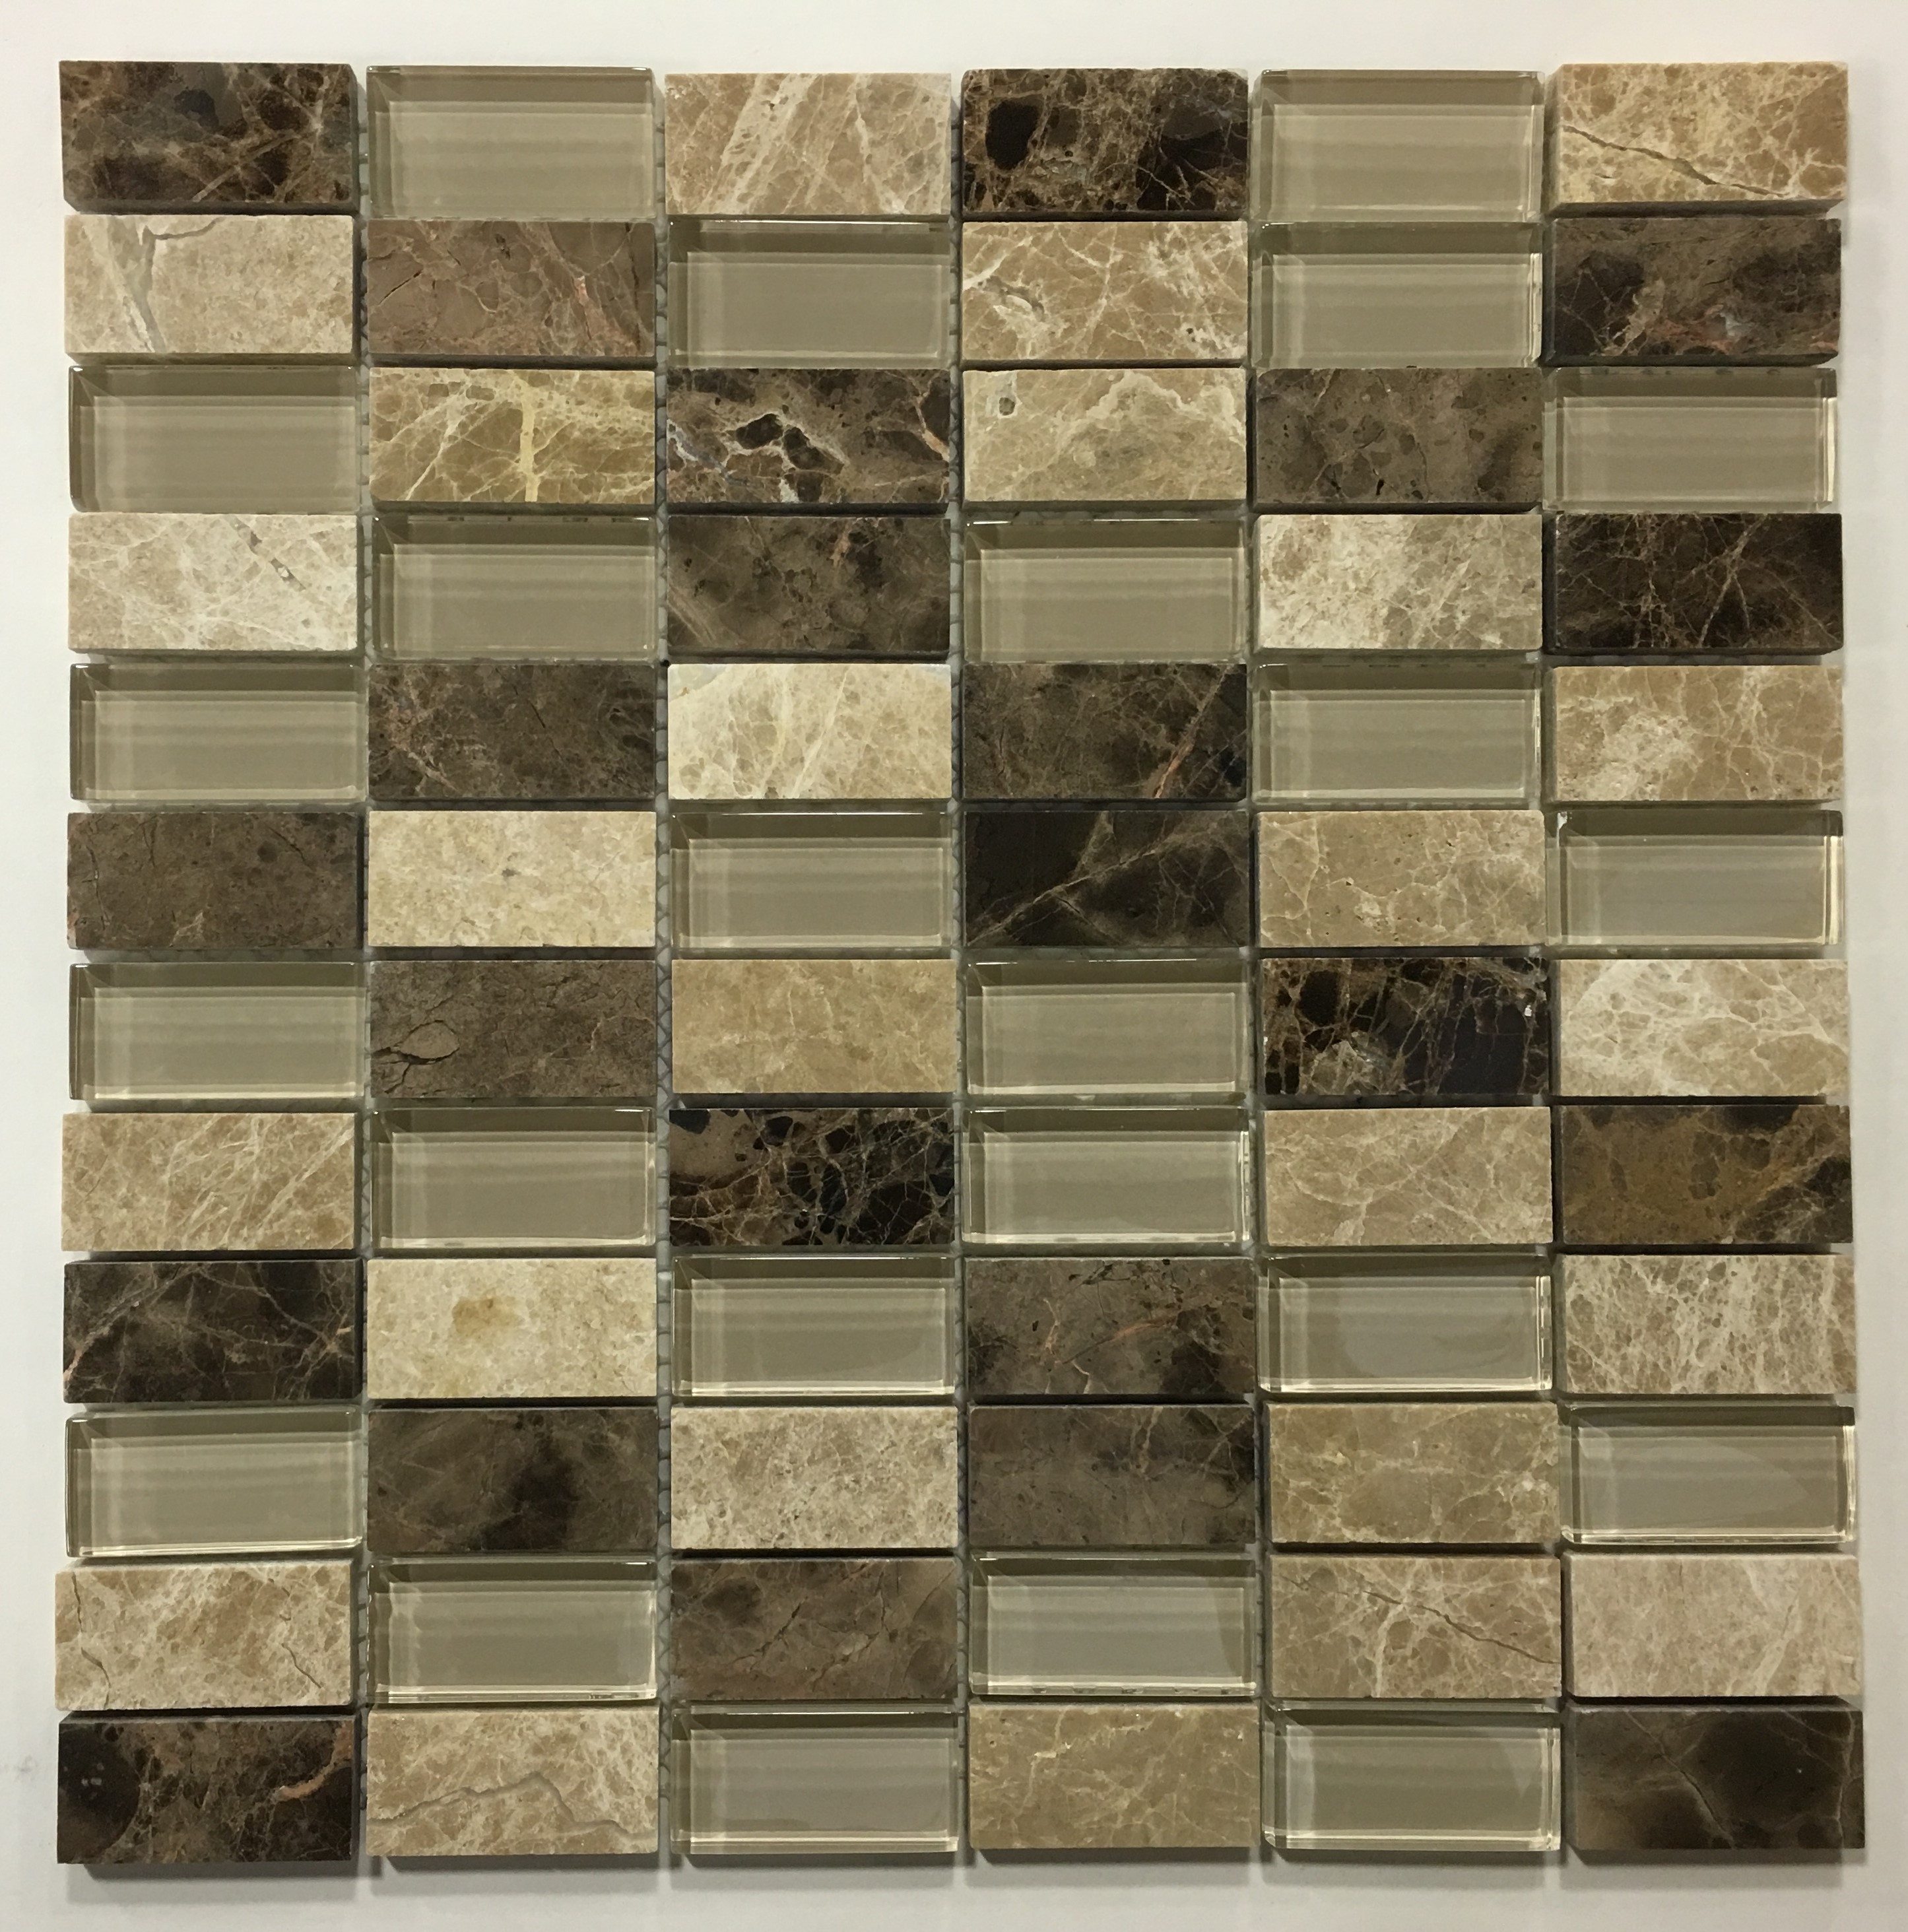 inspirational of and textured flooring floor tile stone